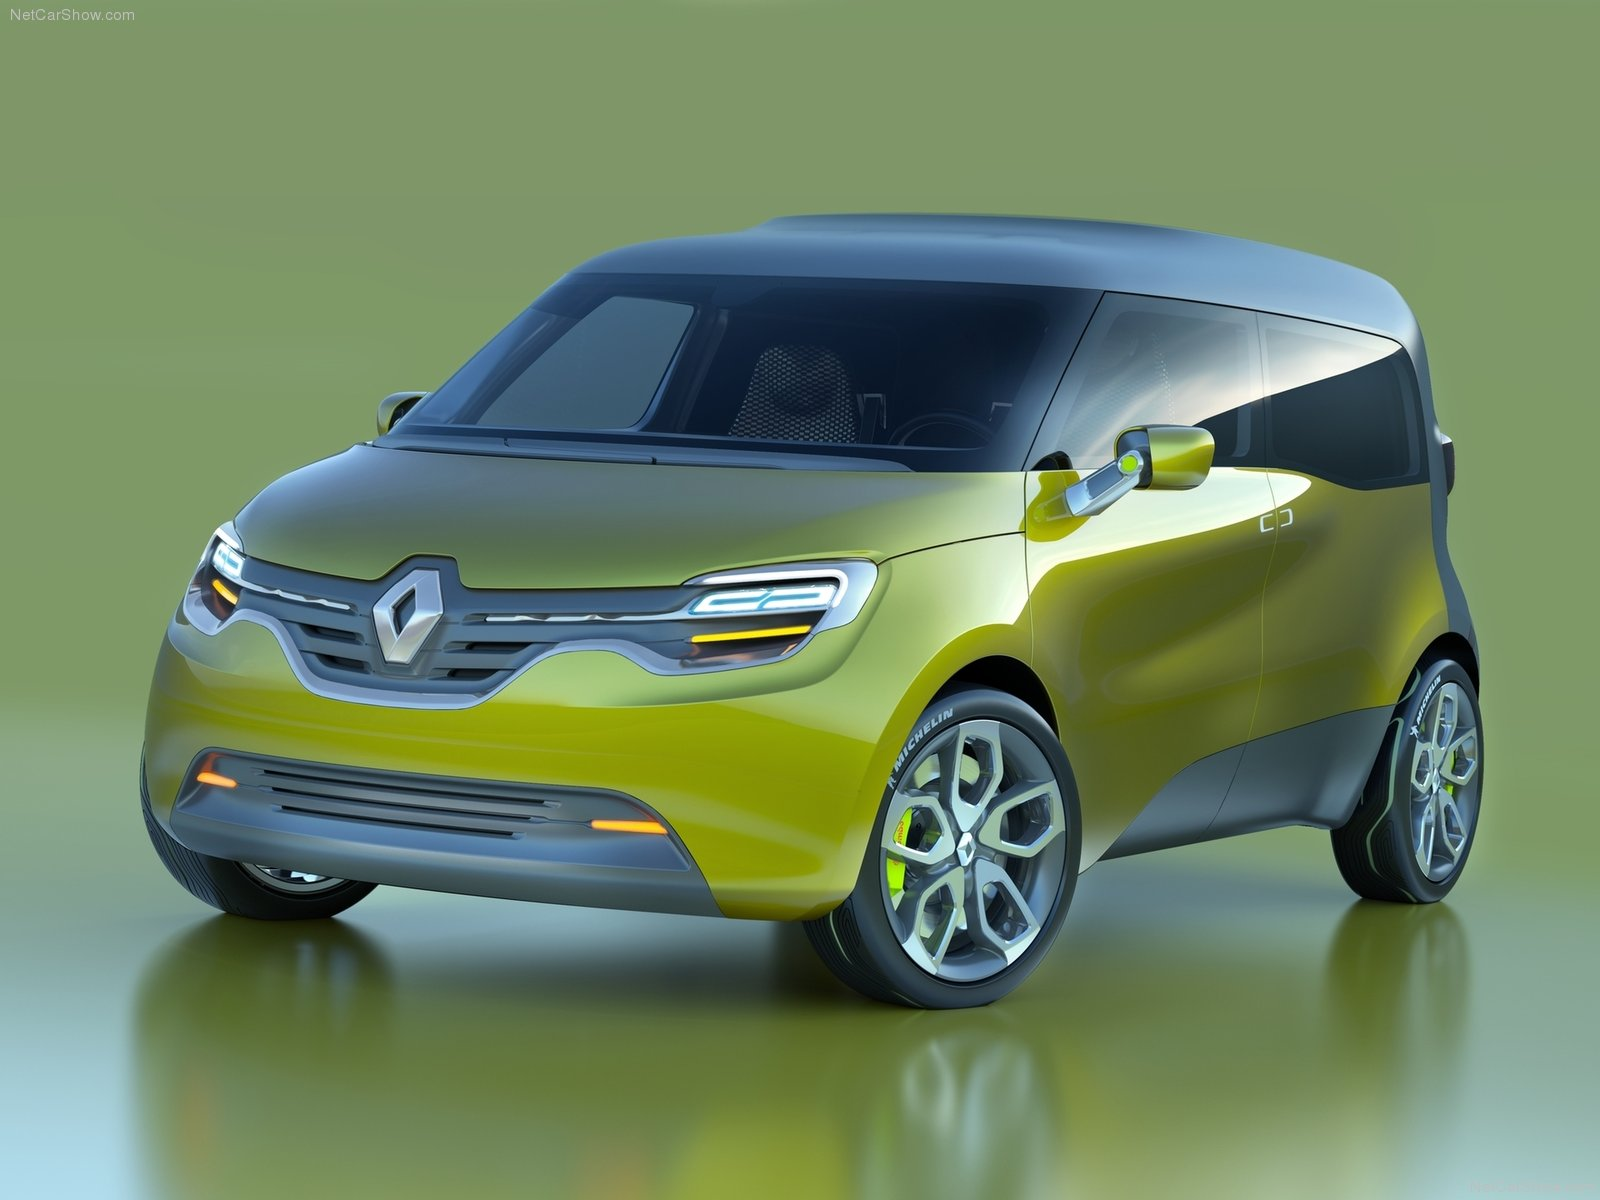 Renault Frendzy image #4